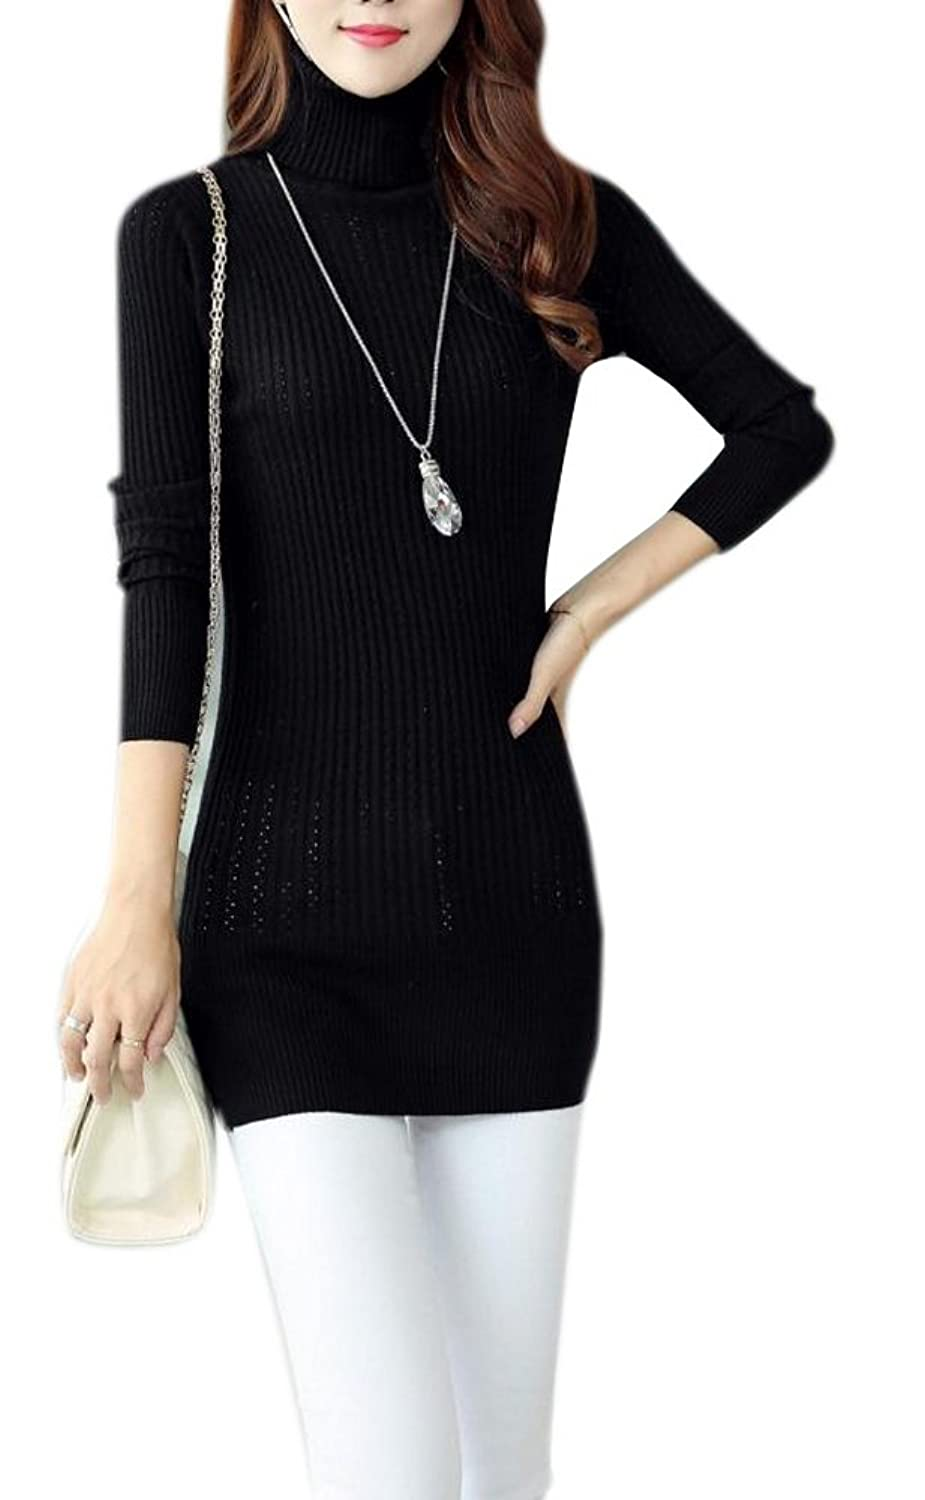 Lingswallow Women's Casual Stretch Turtleneck Knit Pullover Sweater Dress